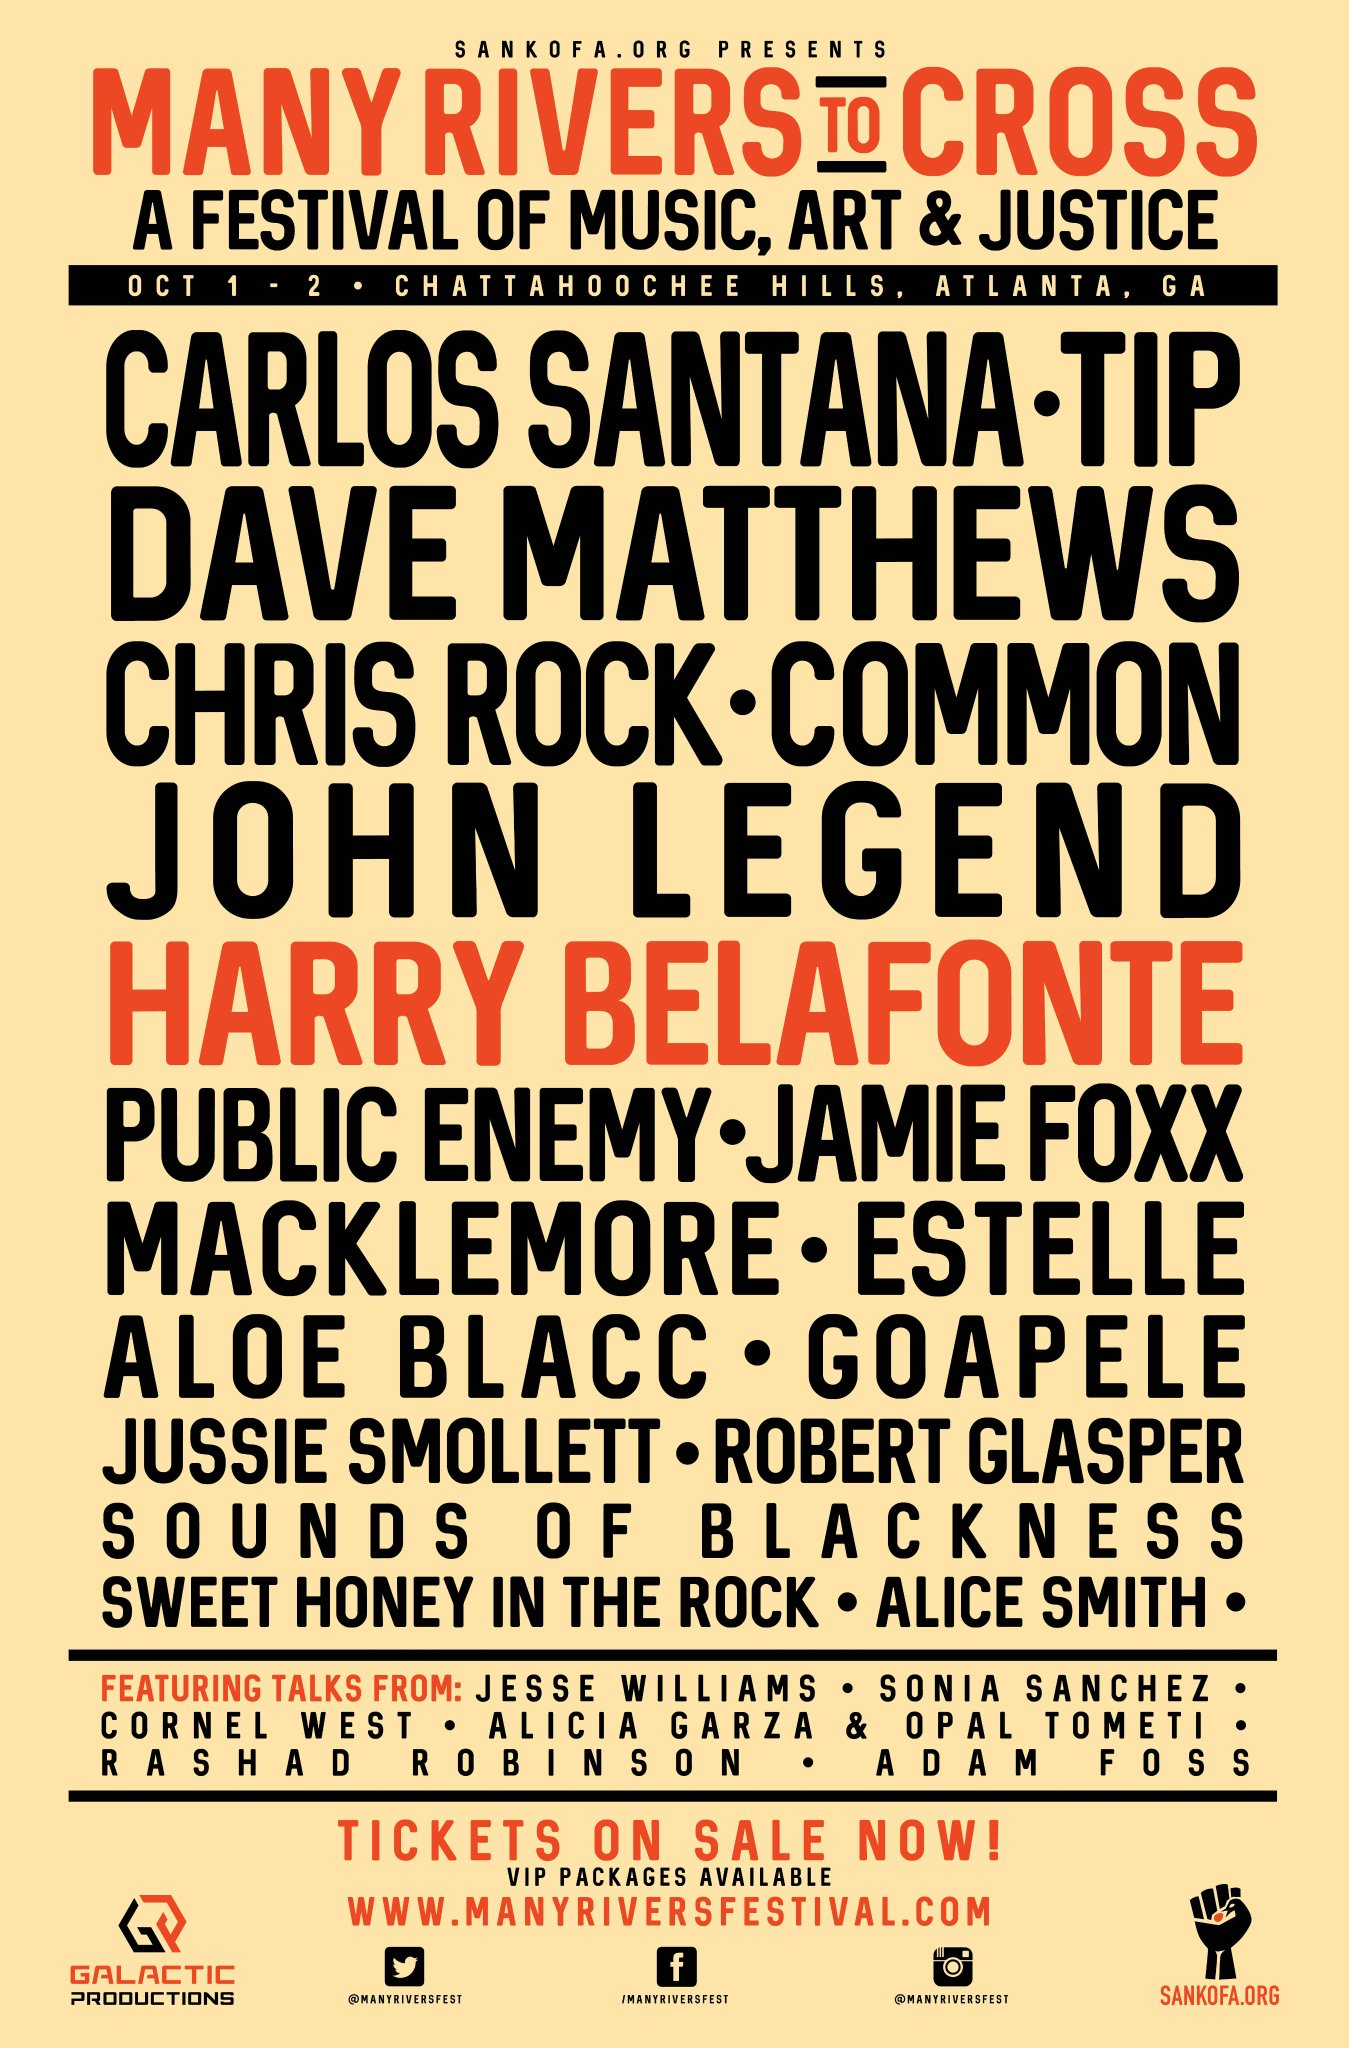 The #ManyRiversFest, a music, art & justice festival in ATL looks amazing. The movement is strong...what a line-up! https://t.co/QPGrNP1Z5l